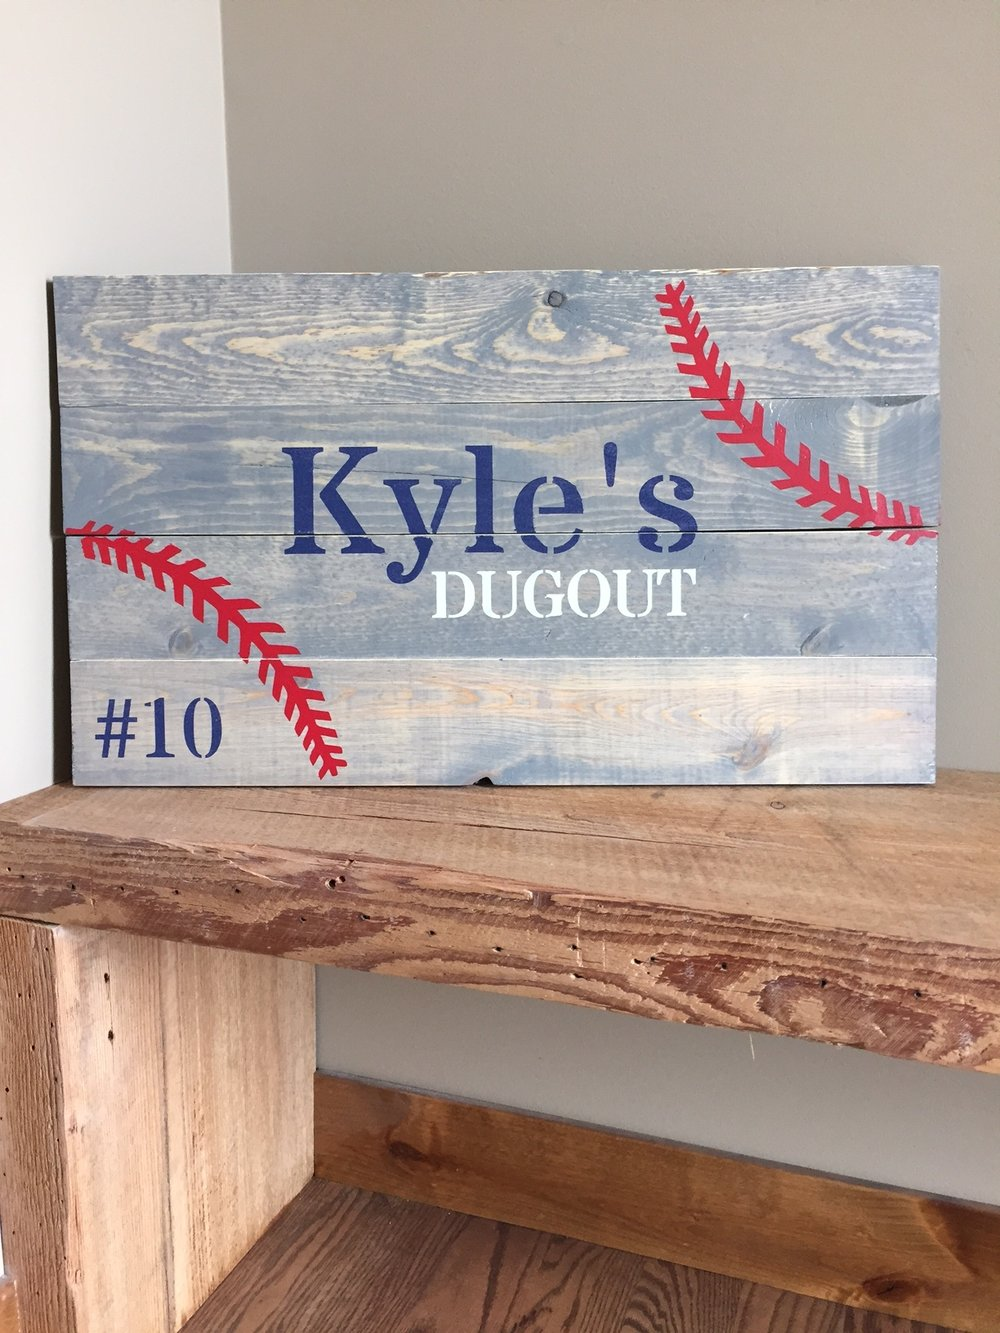 Dugout (EASY)